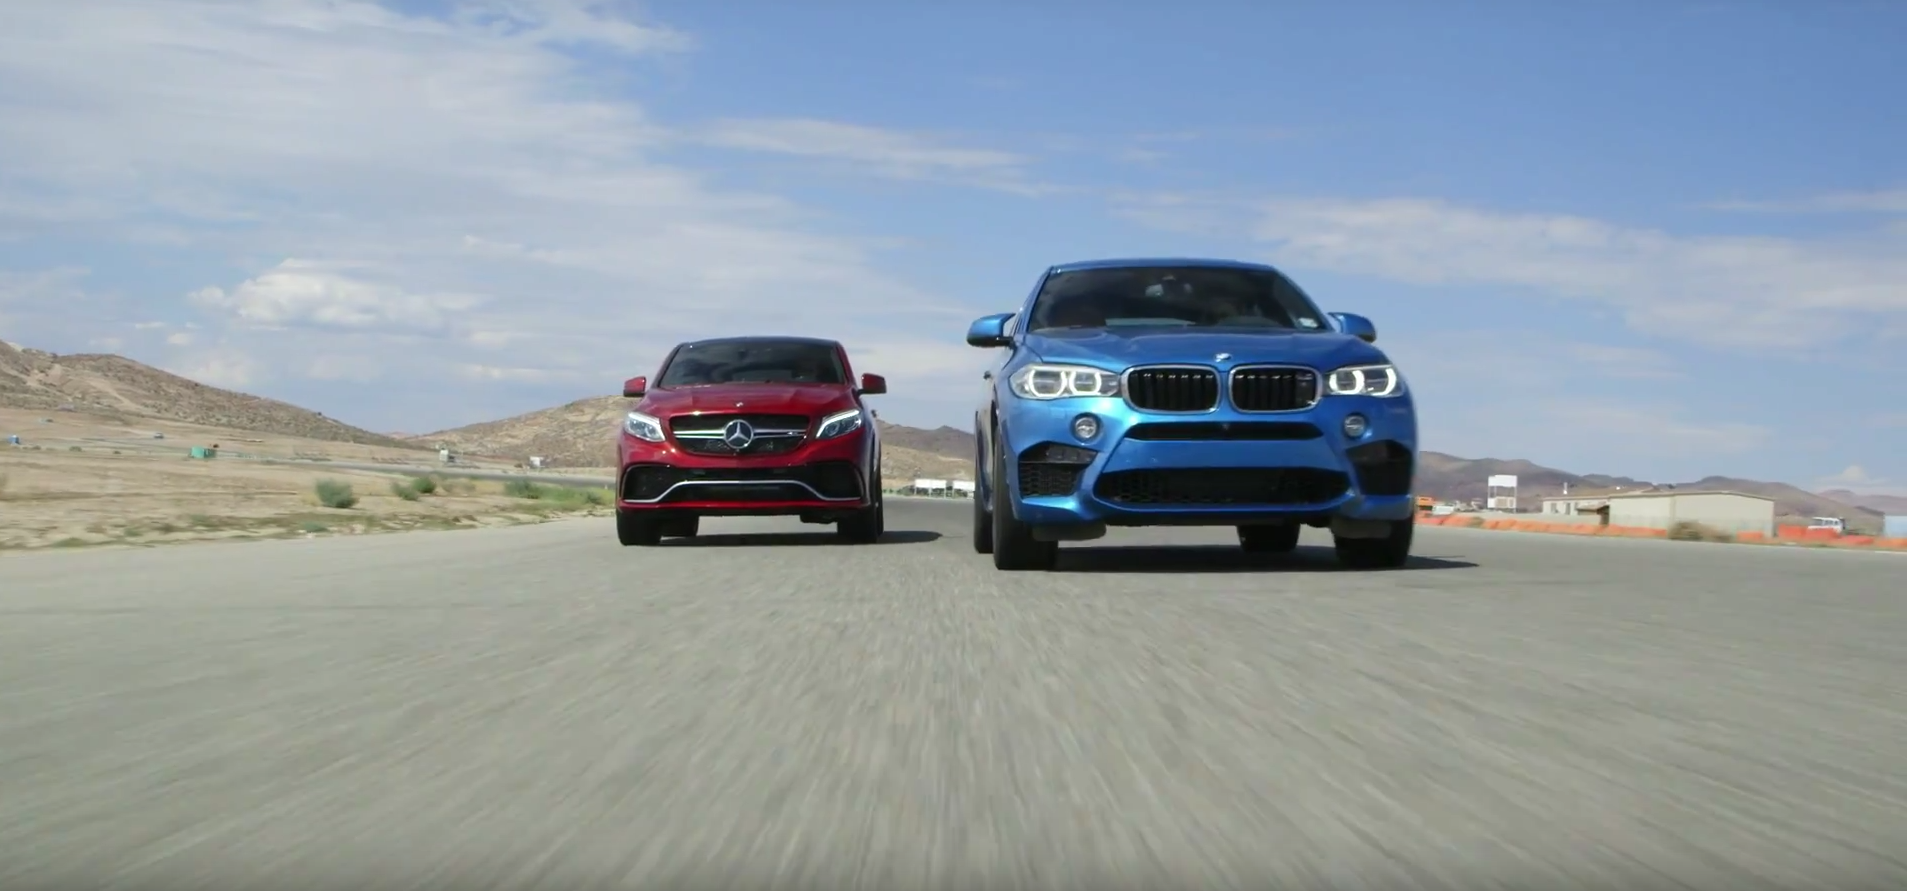 Jonny Lieberman Pokes At The Mercedes Amg Gle 63 S Coupe And X6 M In Ironic Review Mercedesblog